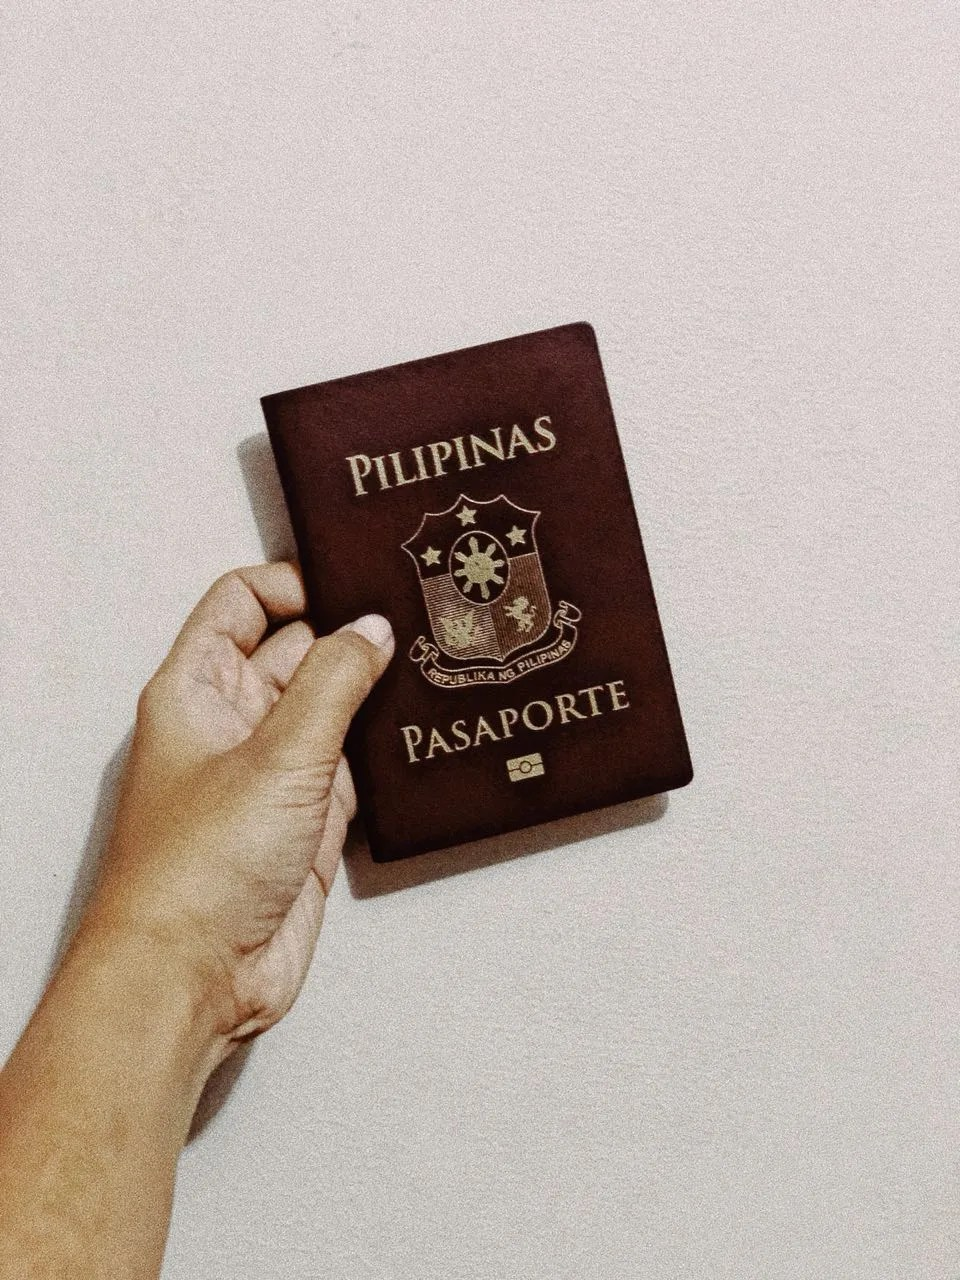 things to know before traveling to the philippines,  best places to visit in the philippines, tourist spots in the philippines, places to visit in the philippines for couples, visa extension in the philippines, visa to travel to the philippines